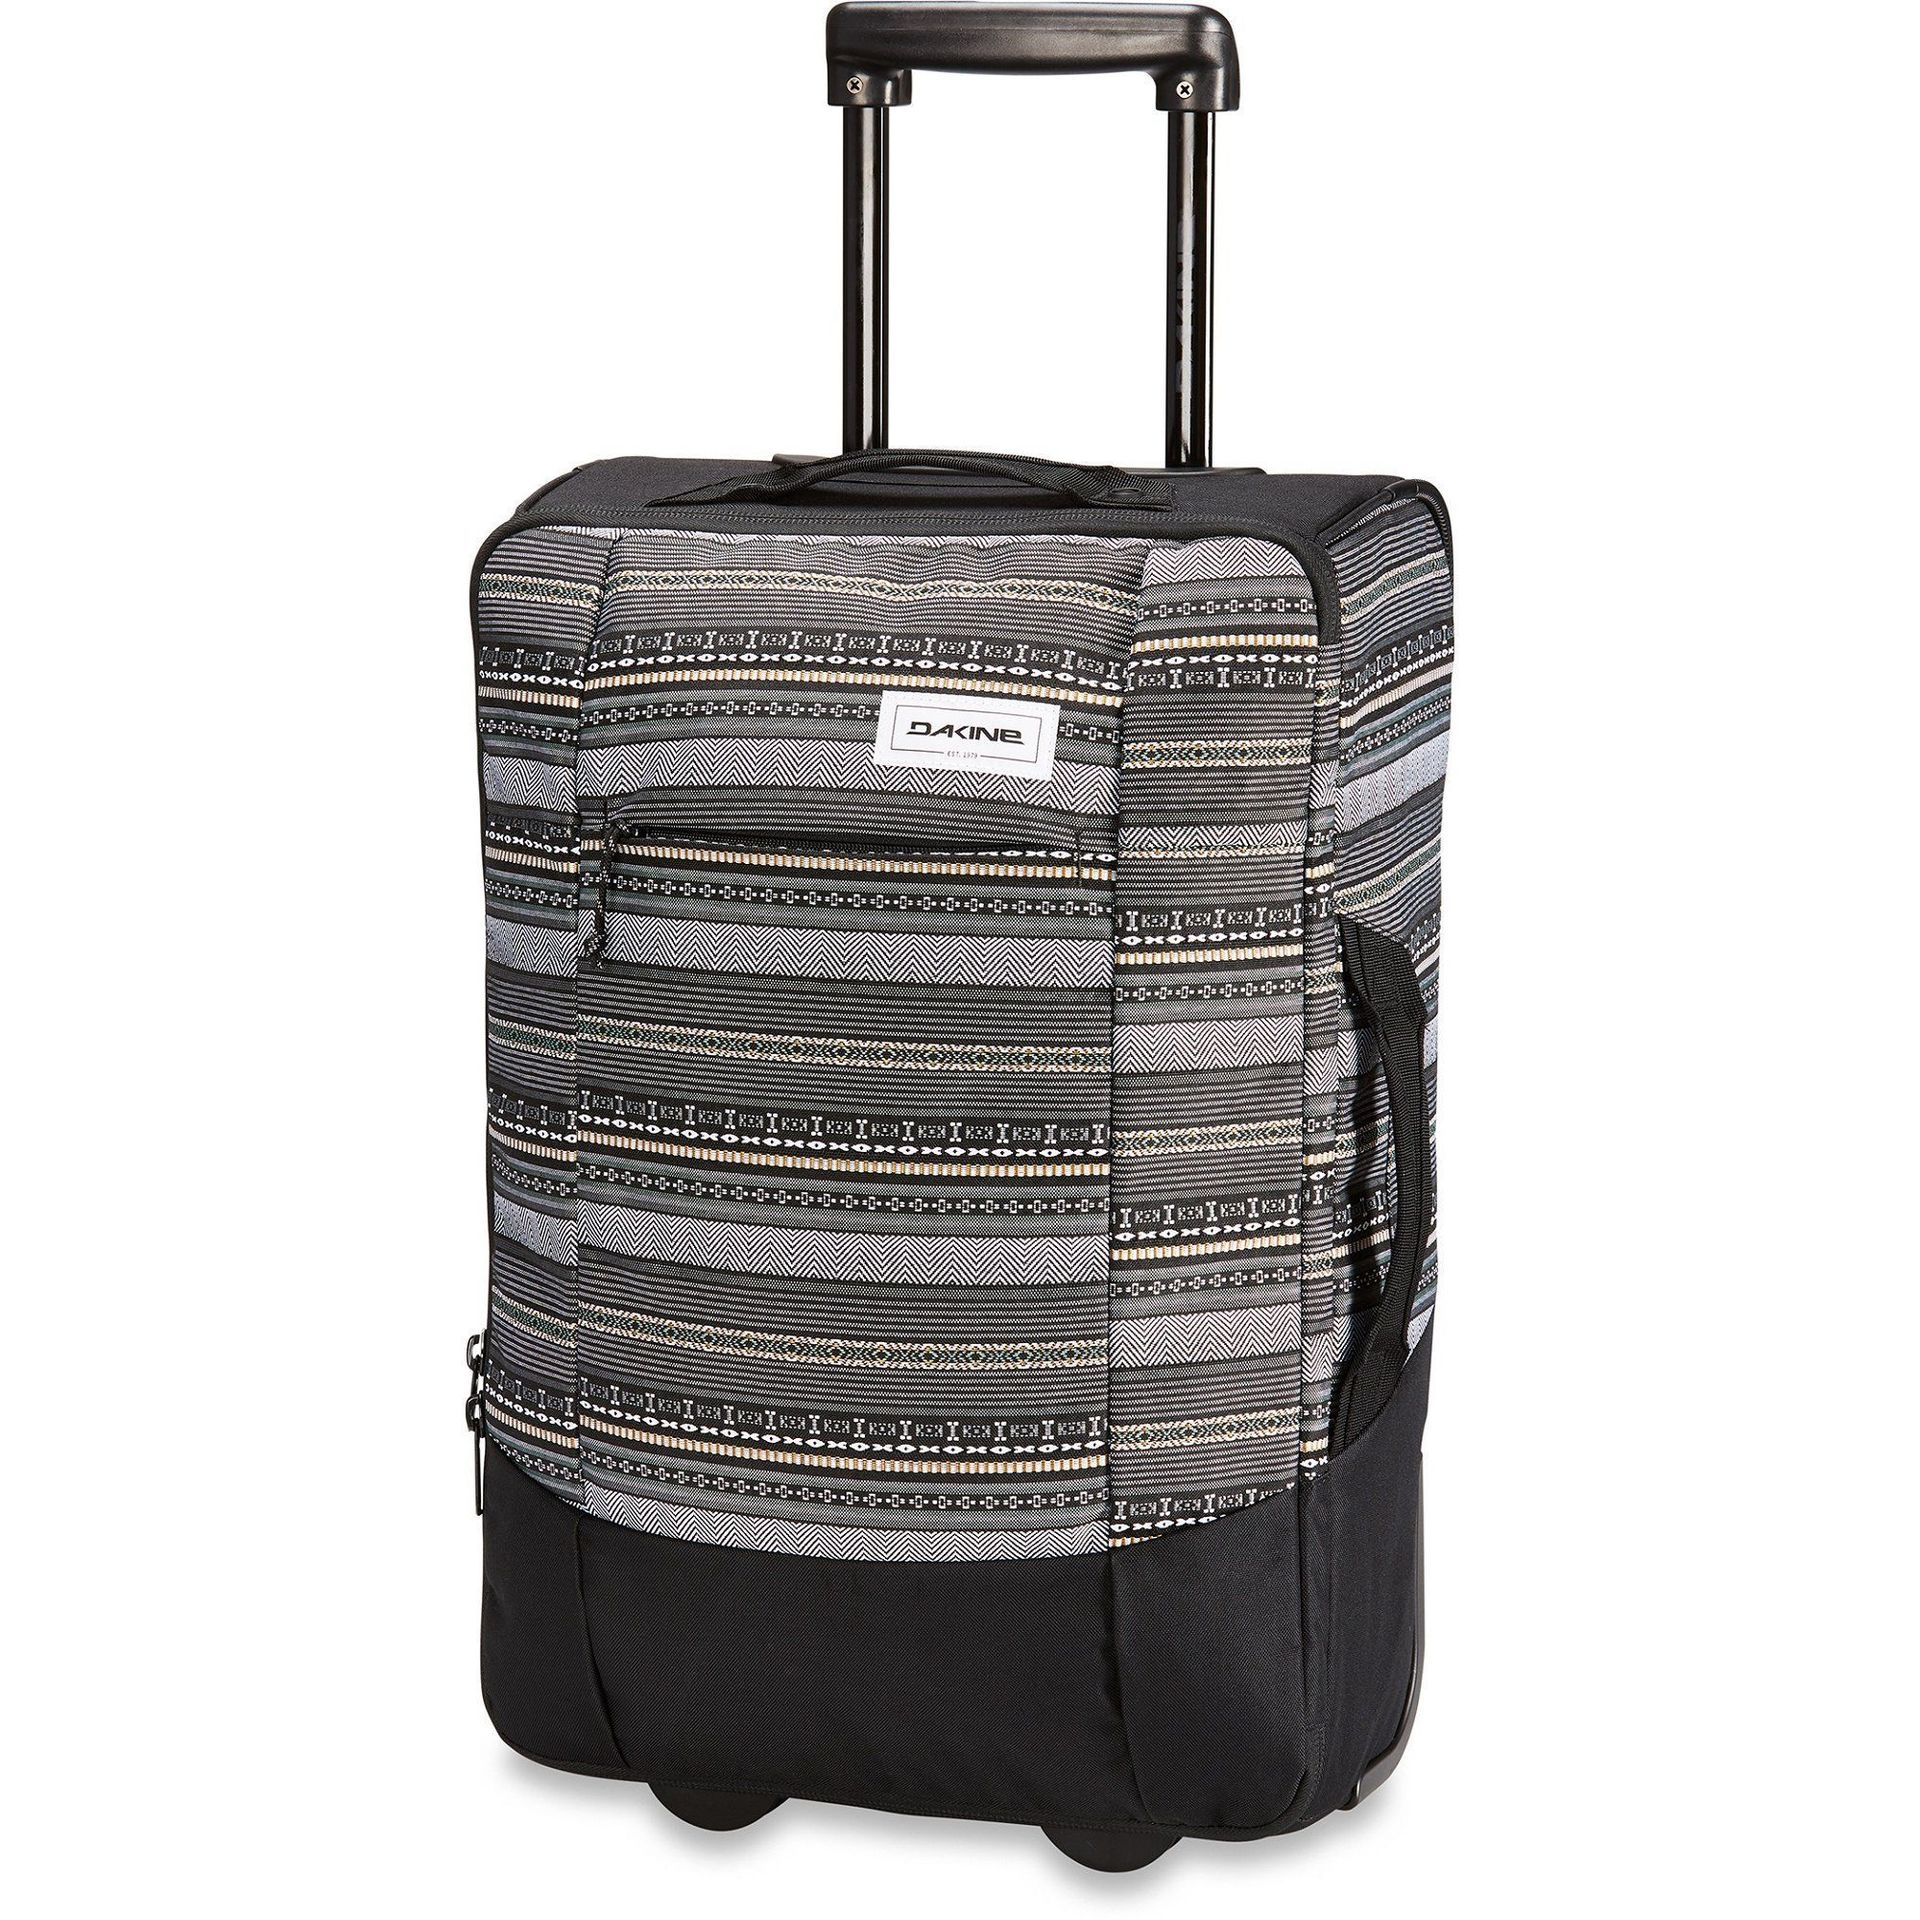 TORBA PODRÓŻNA DAKINE CARRY ON EQ ROLLER 40L ZION